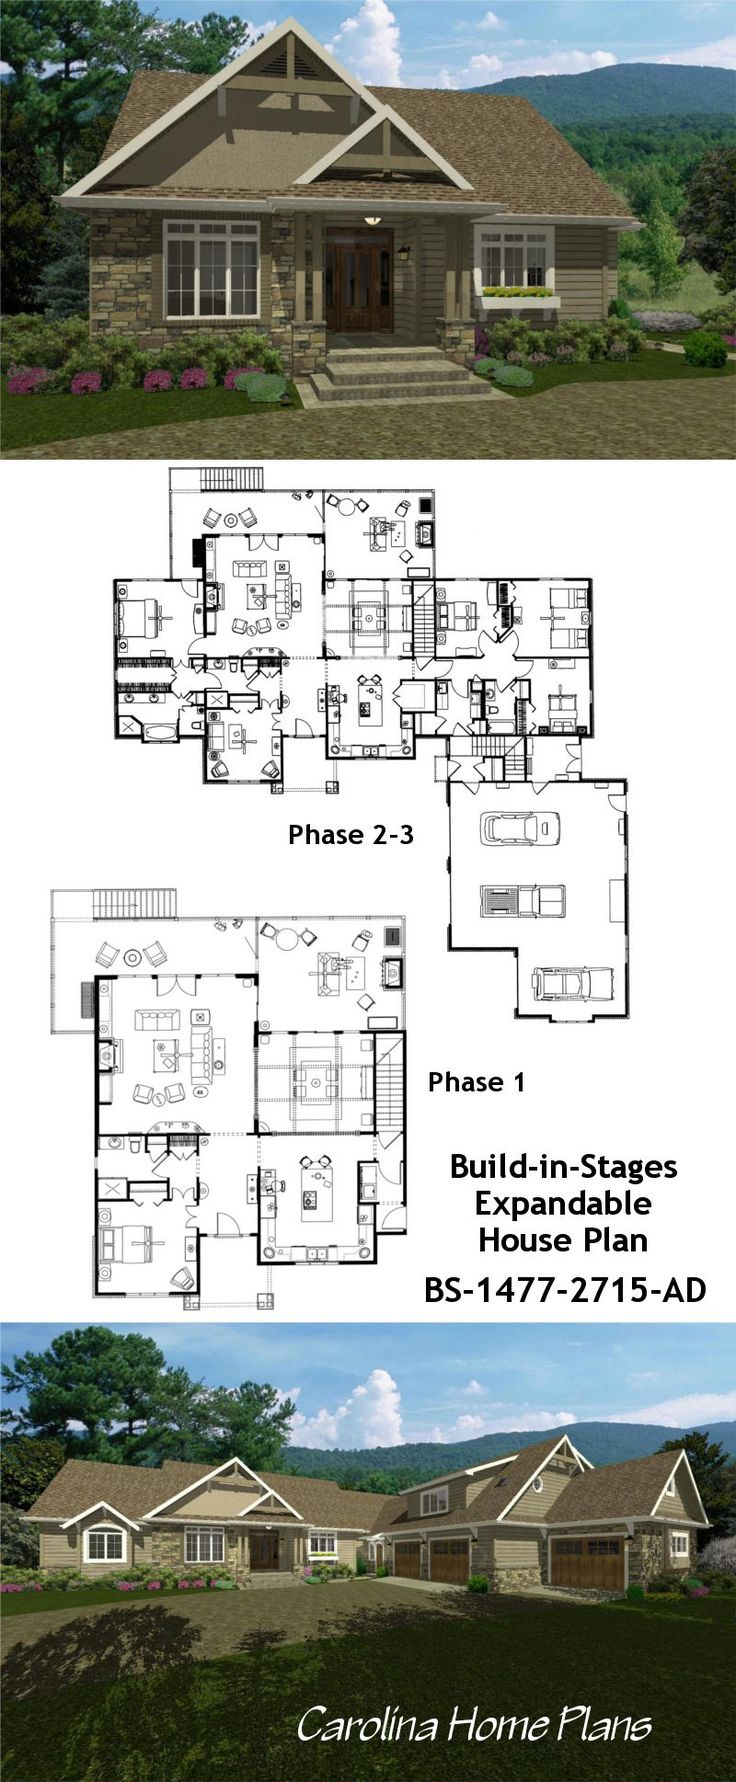 Budget Plan For Building A House House And Home Design